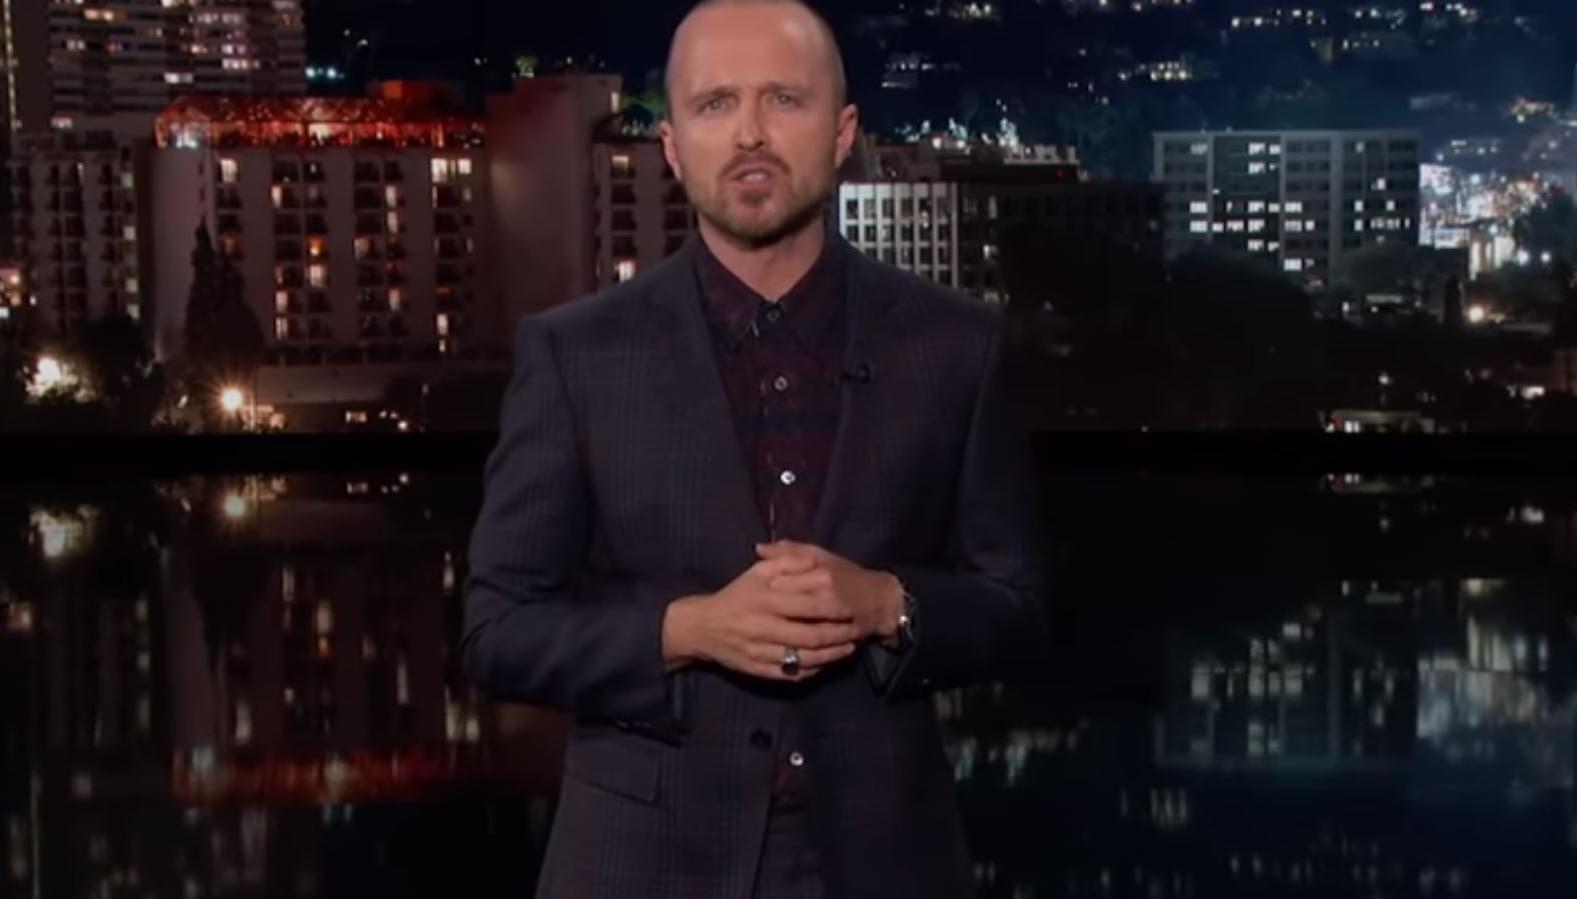 Before 'El Camino': Aaron Paul (Jesse) gives a two minute 'Breaking Bad' recap